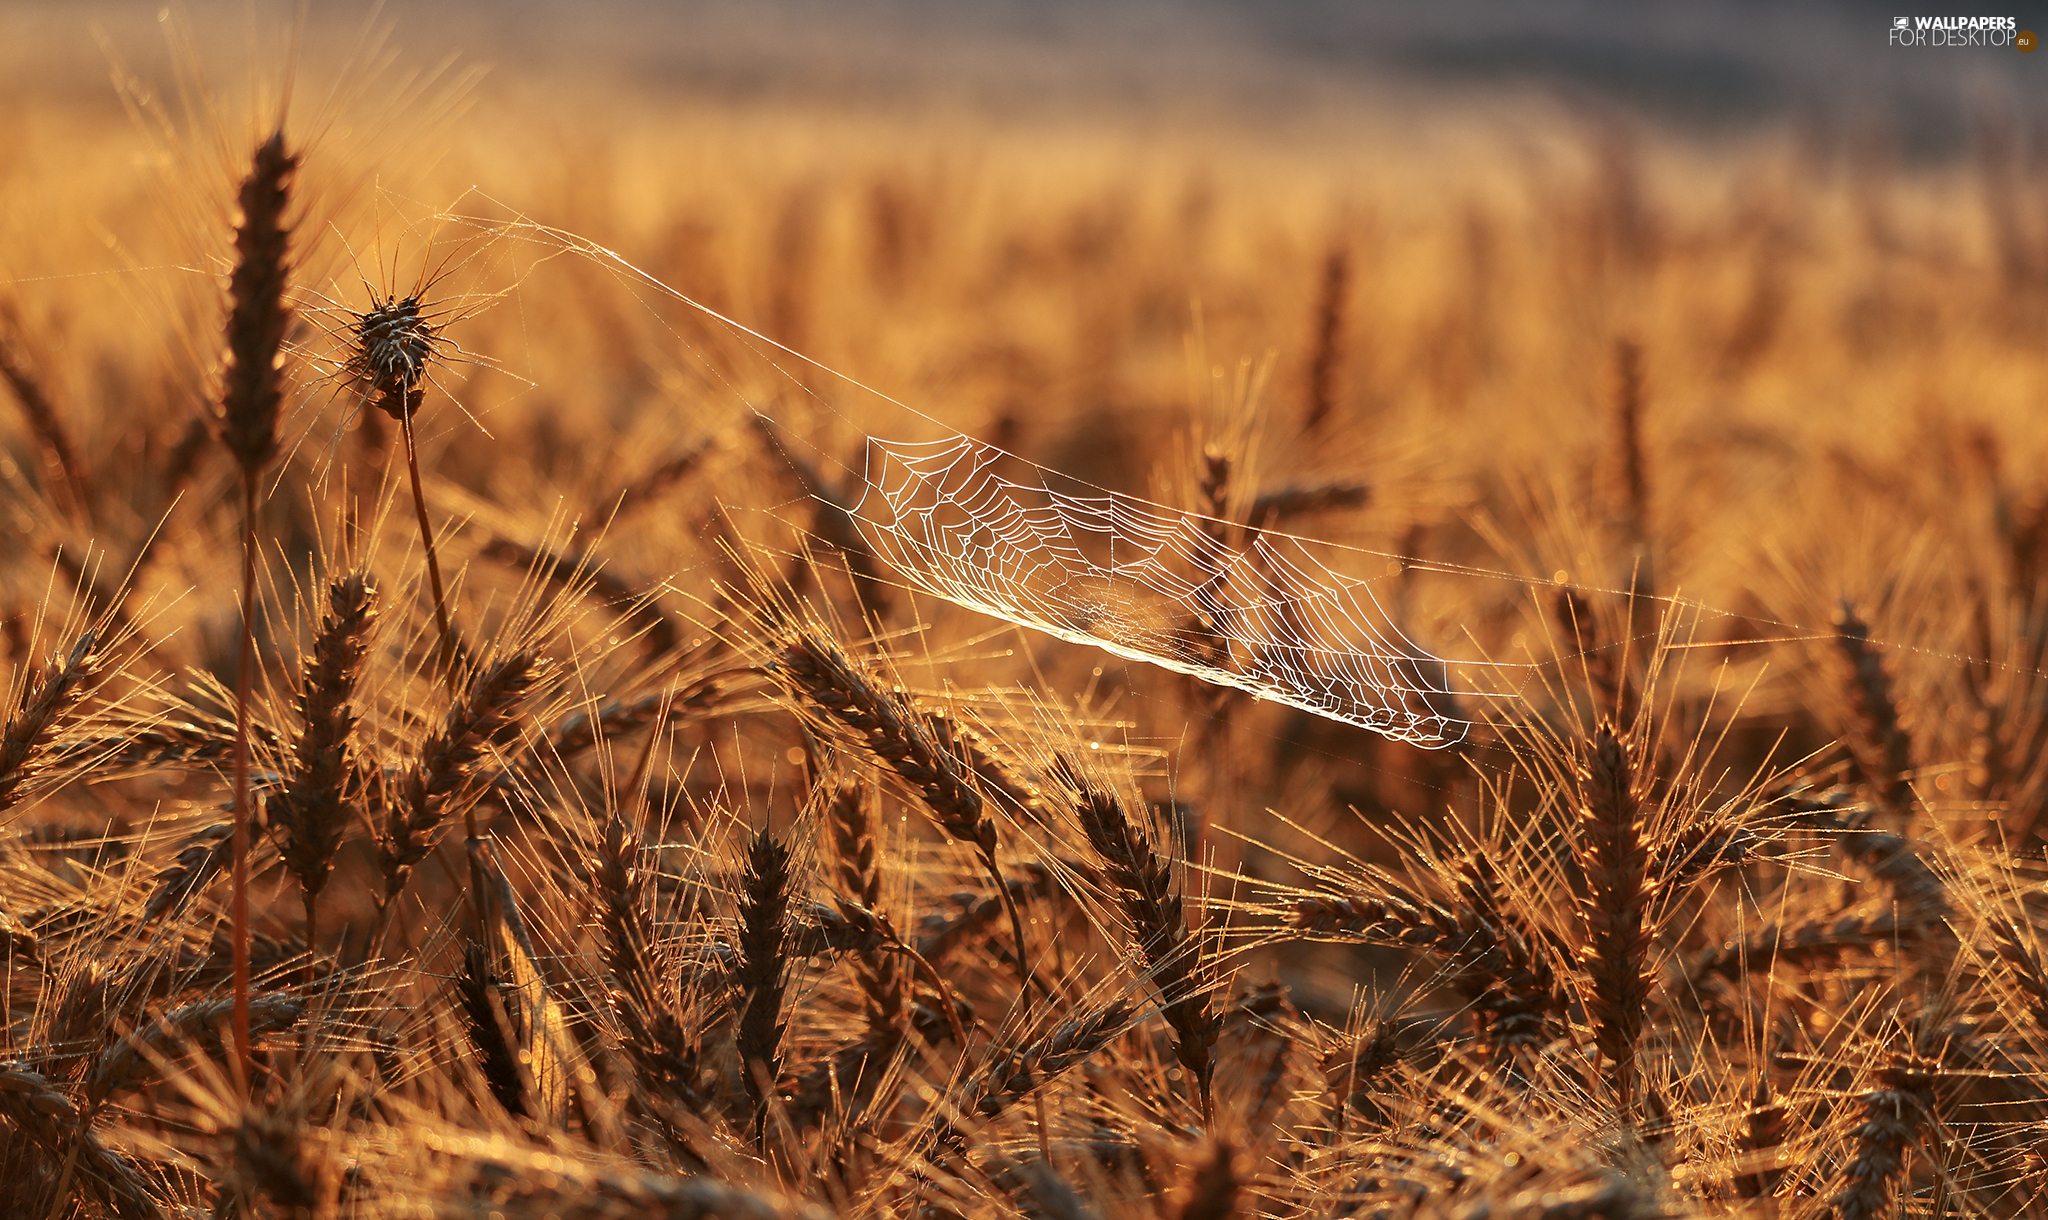 corn, Web, blur, Ears